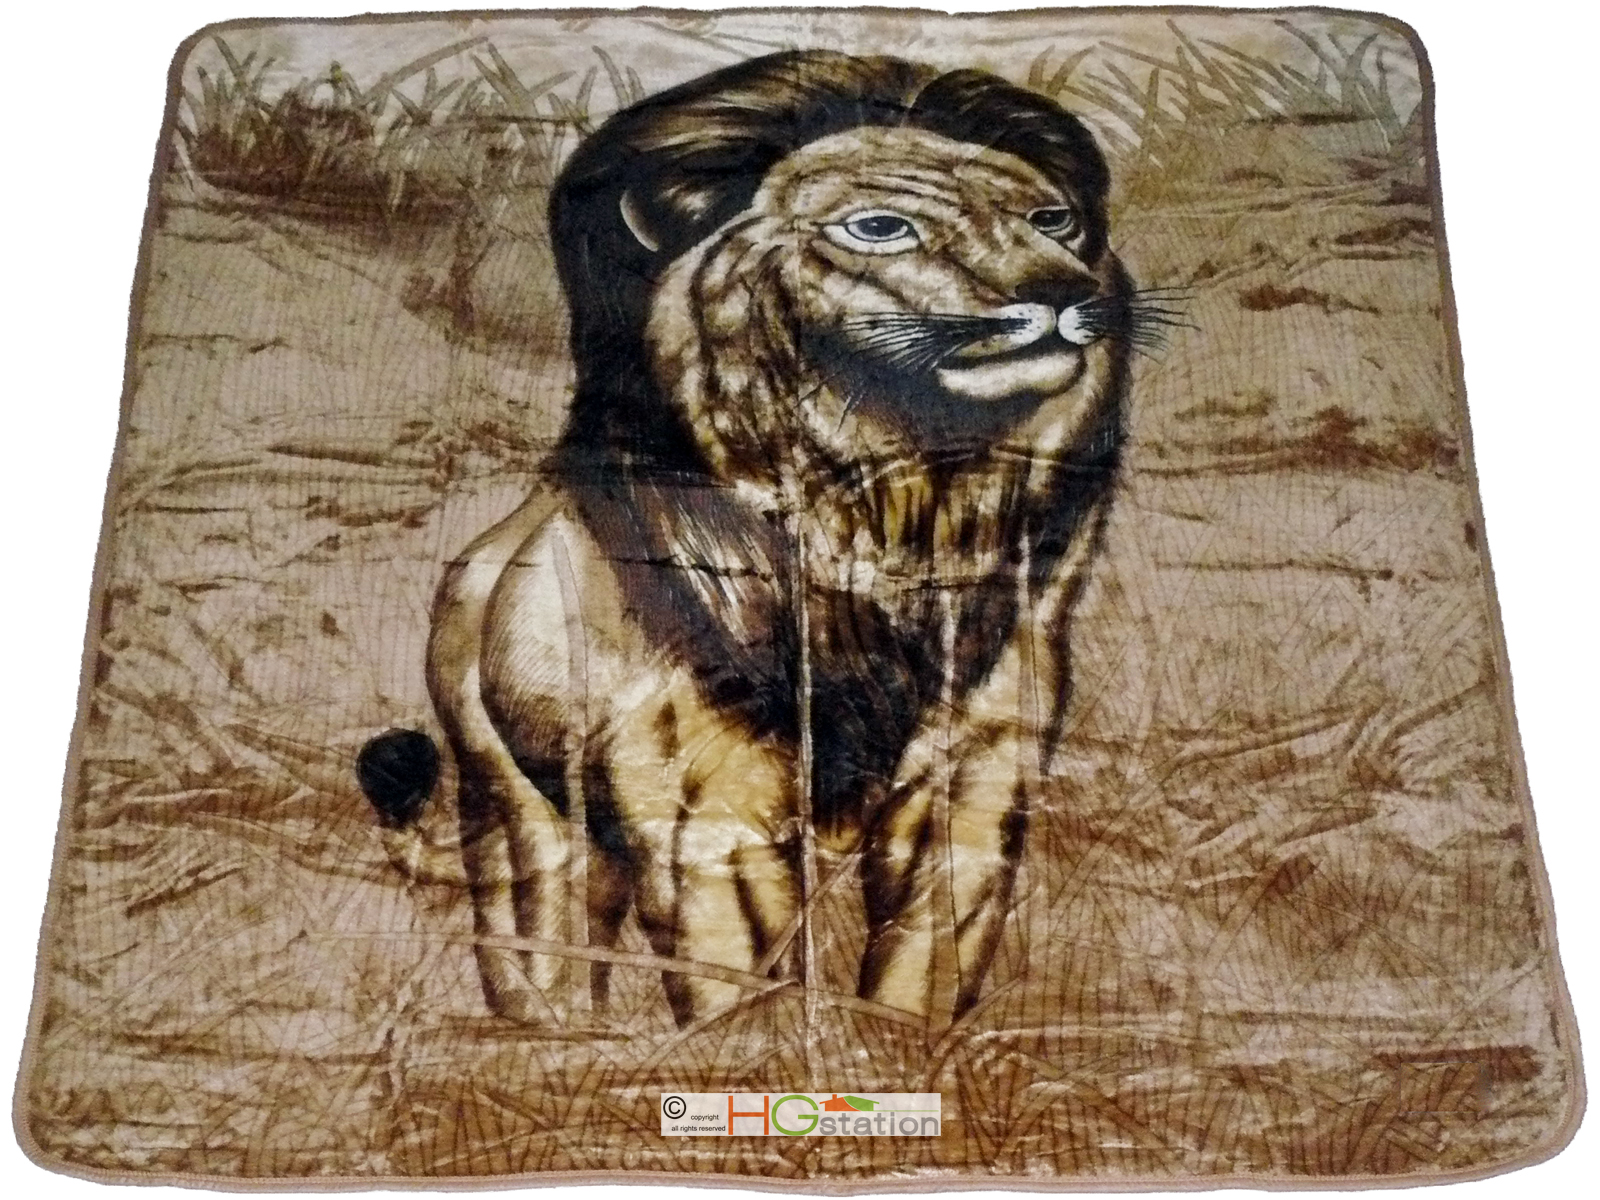 HG station 79x94 Lion King of Jungle Panthera leo Soft Faux Mink Plush Queen Blanket Brown Gold at Sears.com